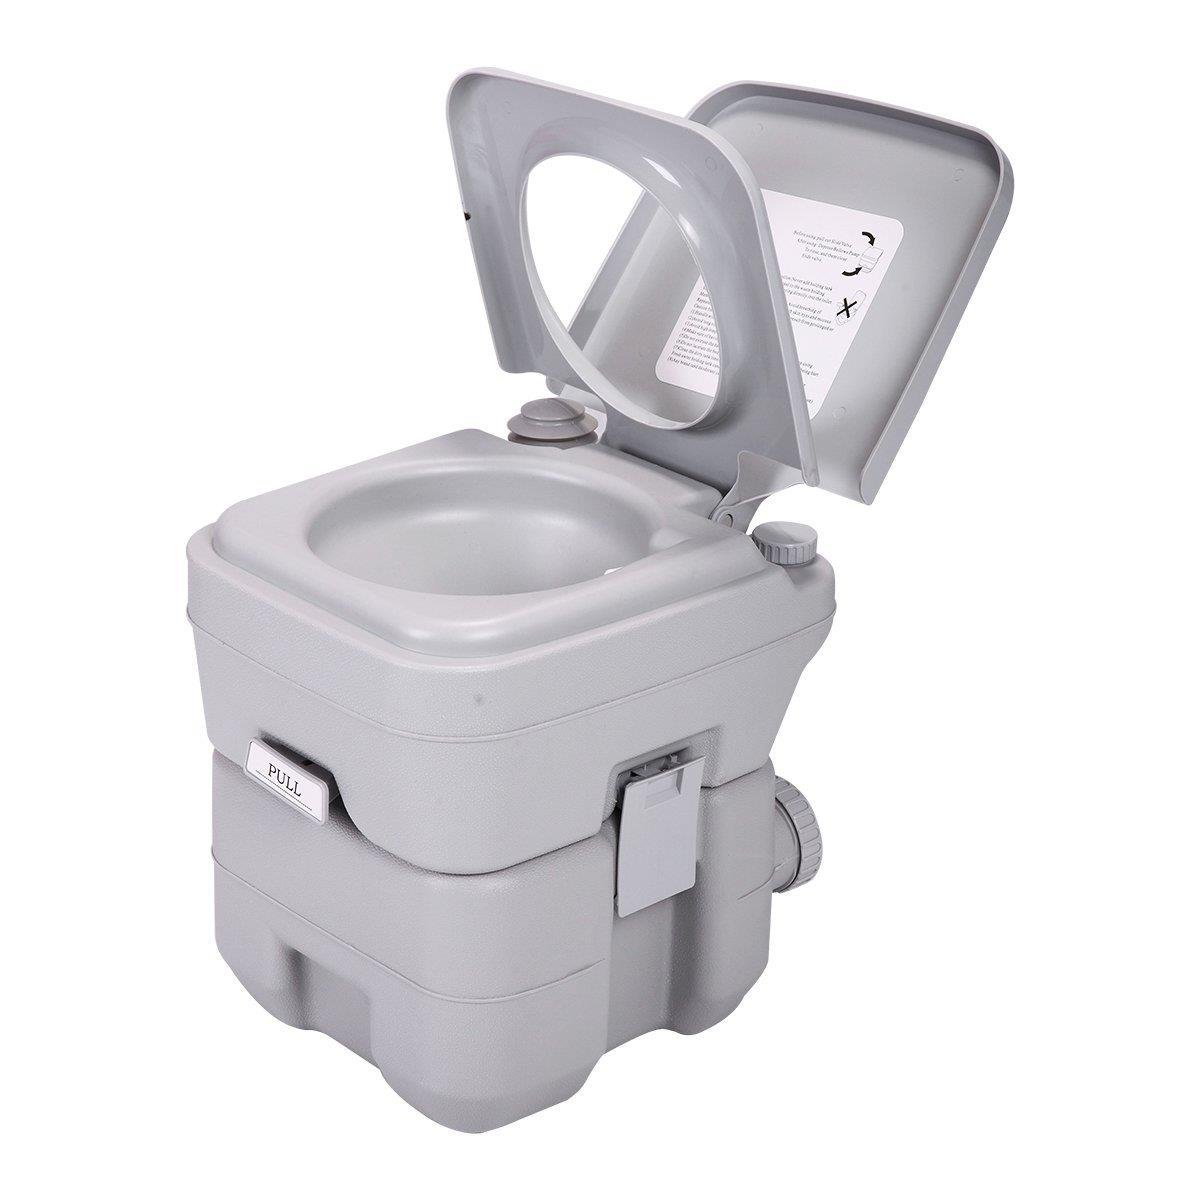 Ktaxon 5 Gallon Motorhome Flushing Toilet, Removable Camper Porta Potty Commode, Great for Car, Boat, Caravan, Campsite, Hospital